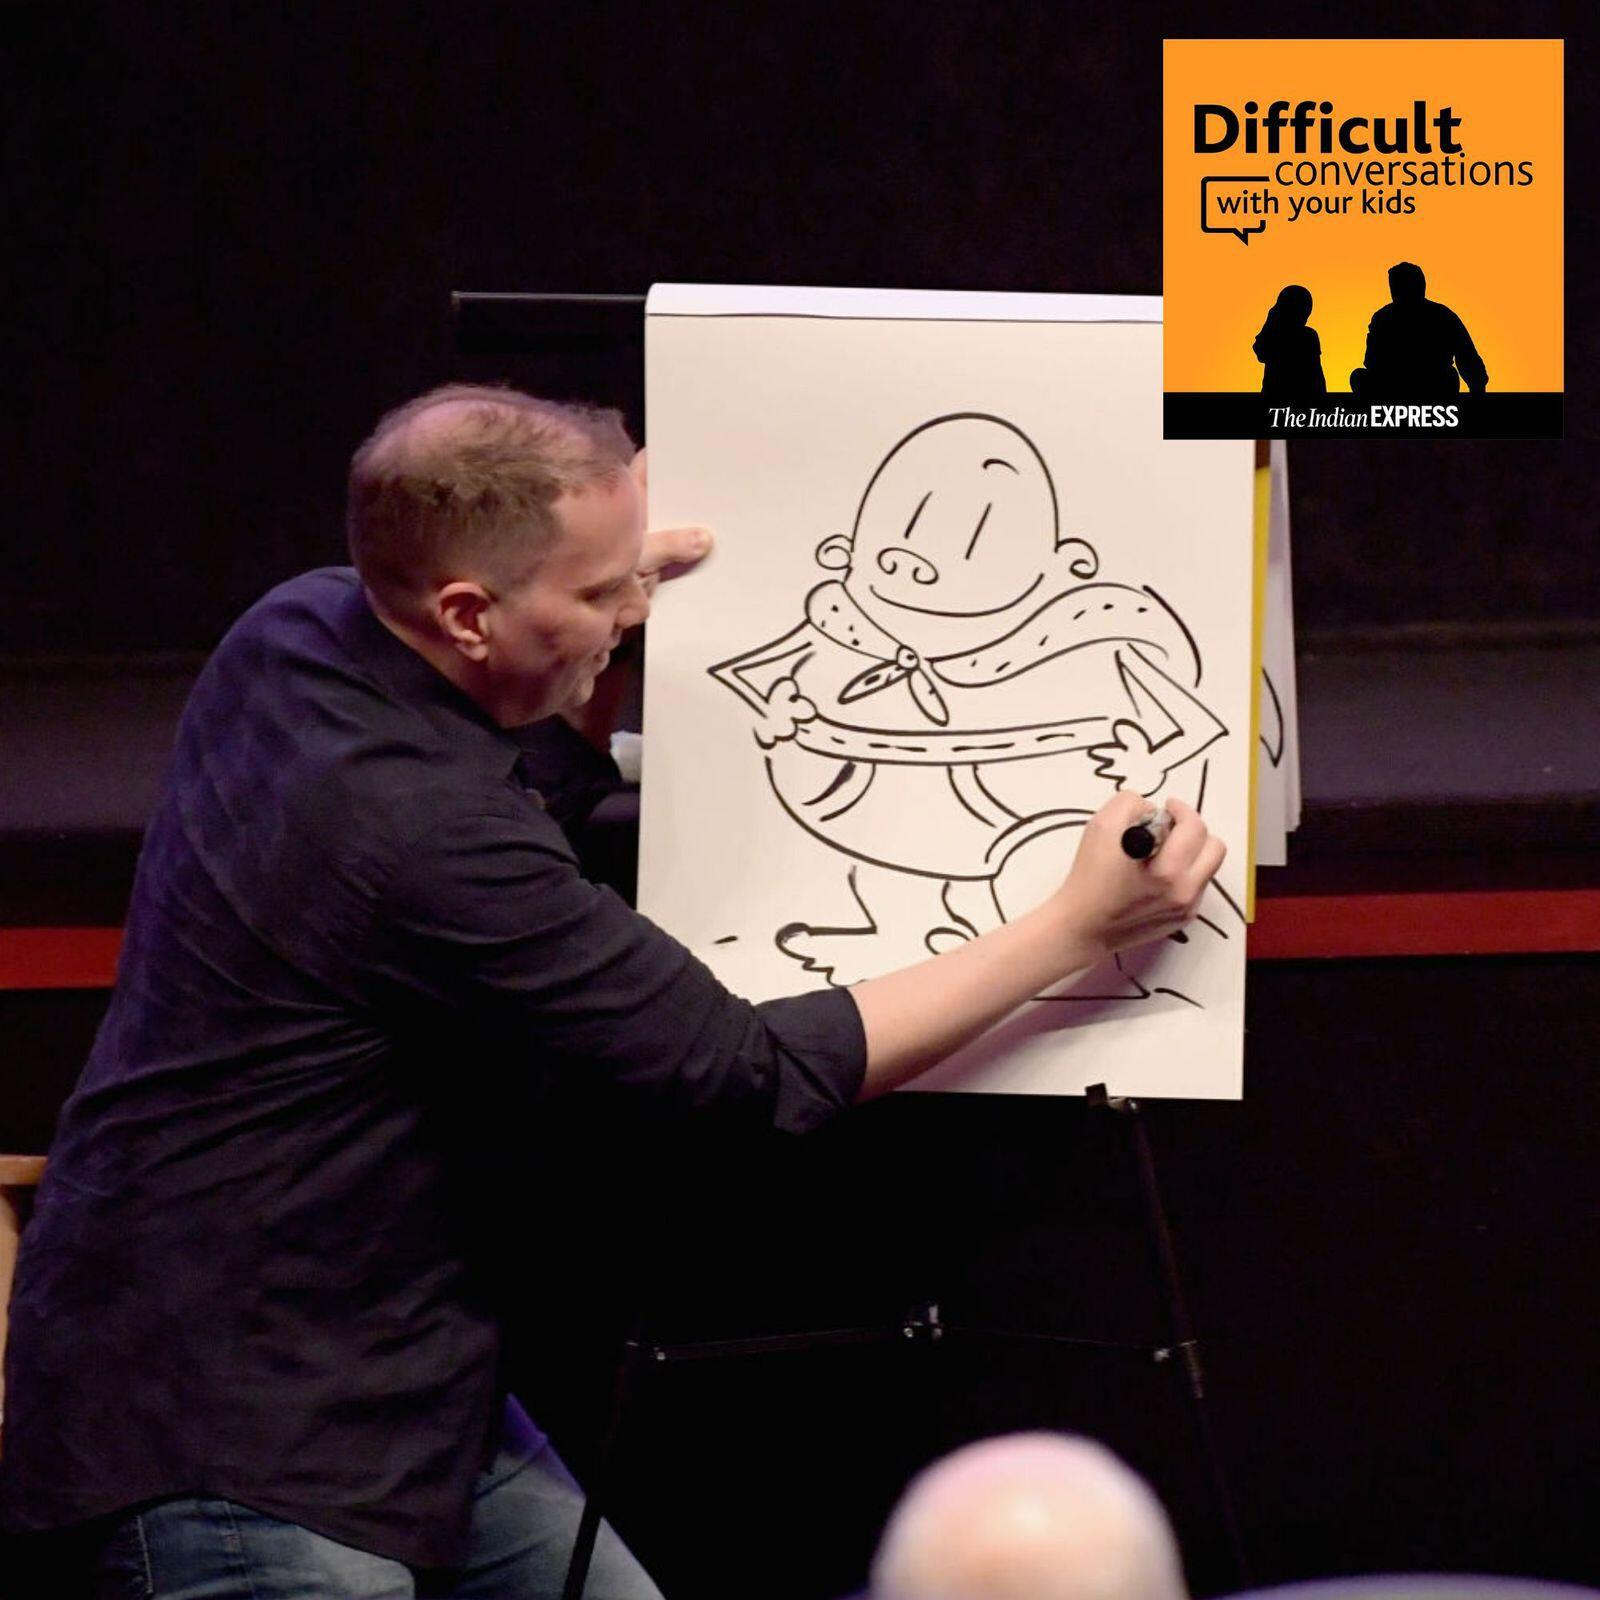 29: Captain Underpants author Dav Pilkey, on growing up with ADHD and dyslexia